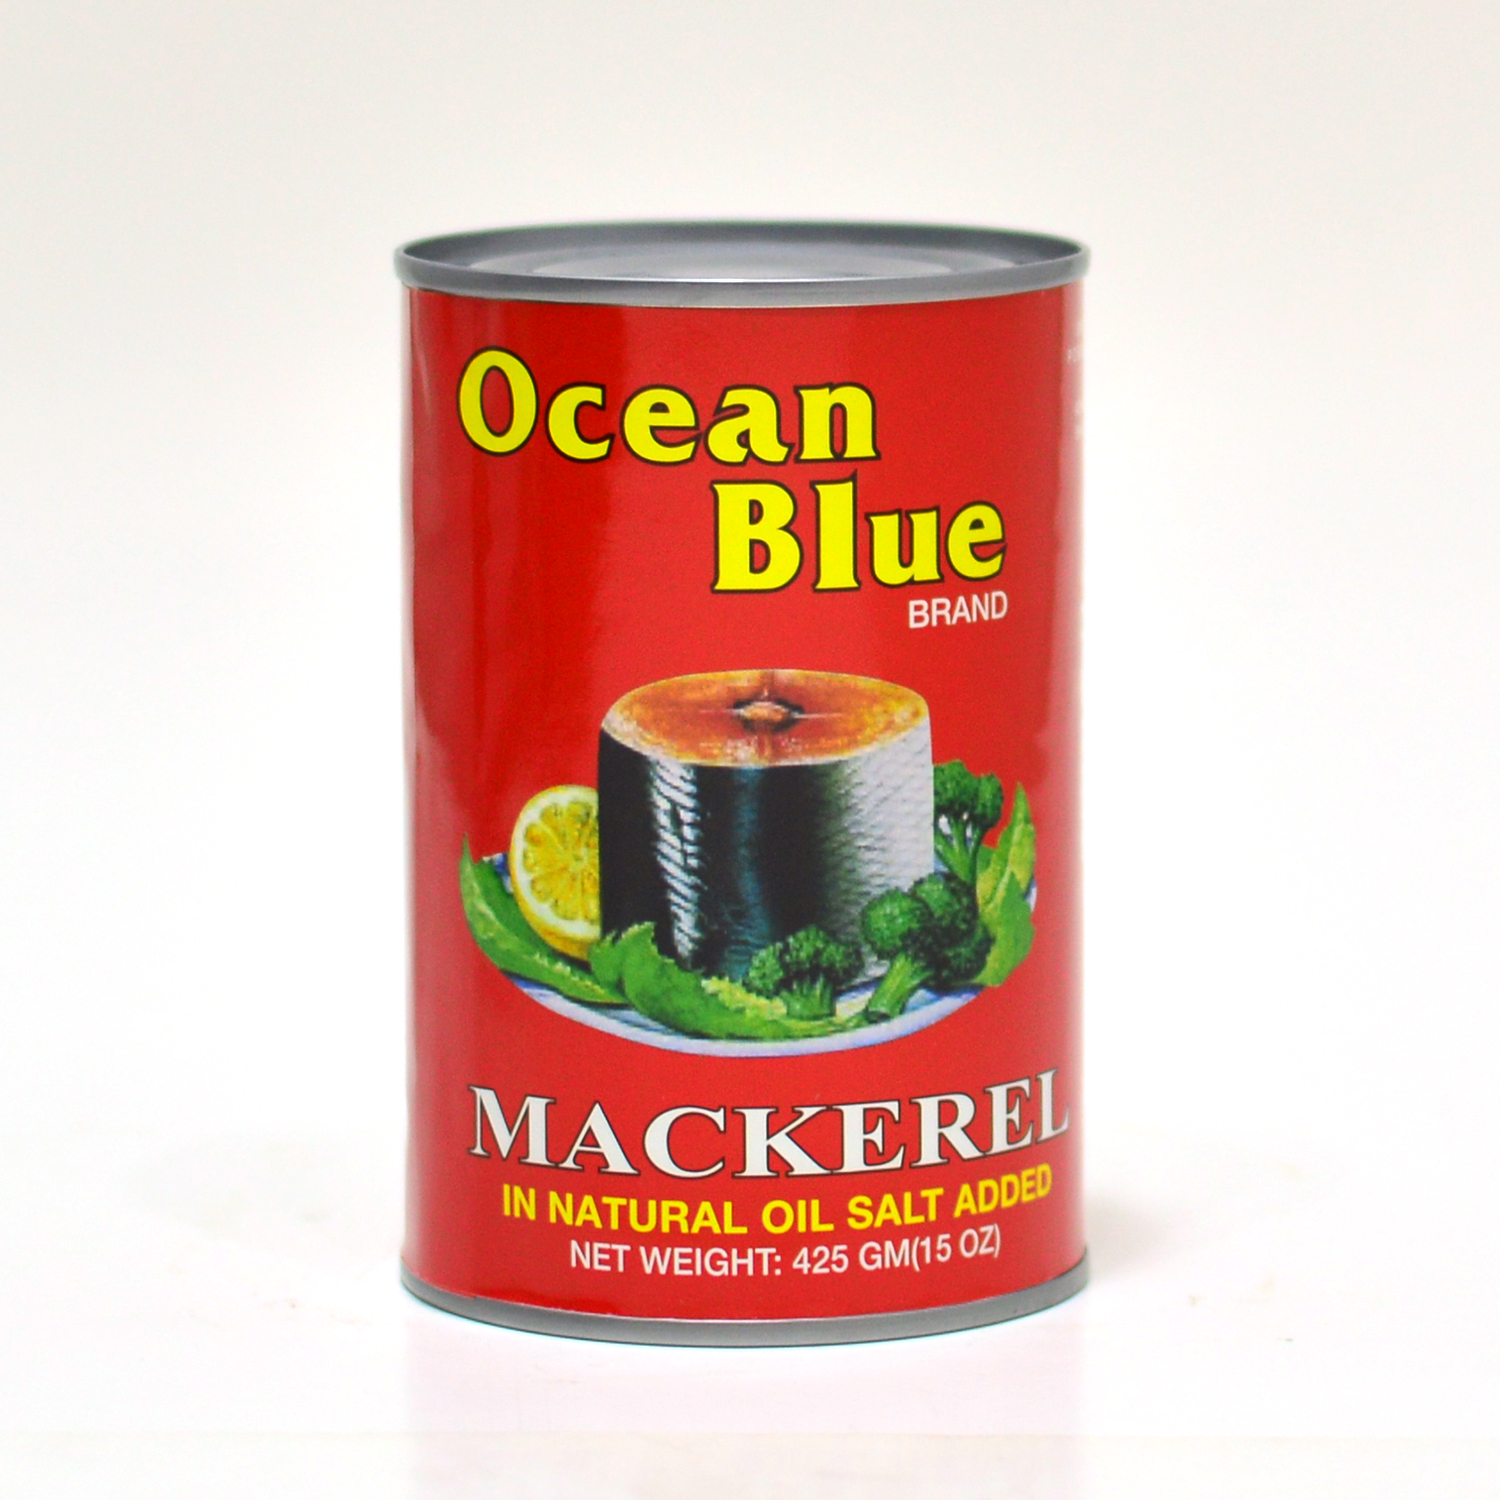 Ocean Blue Mackerel - Natural Oil	425g